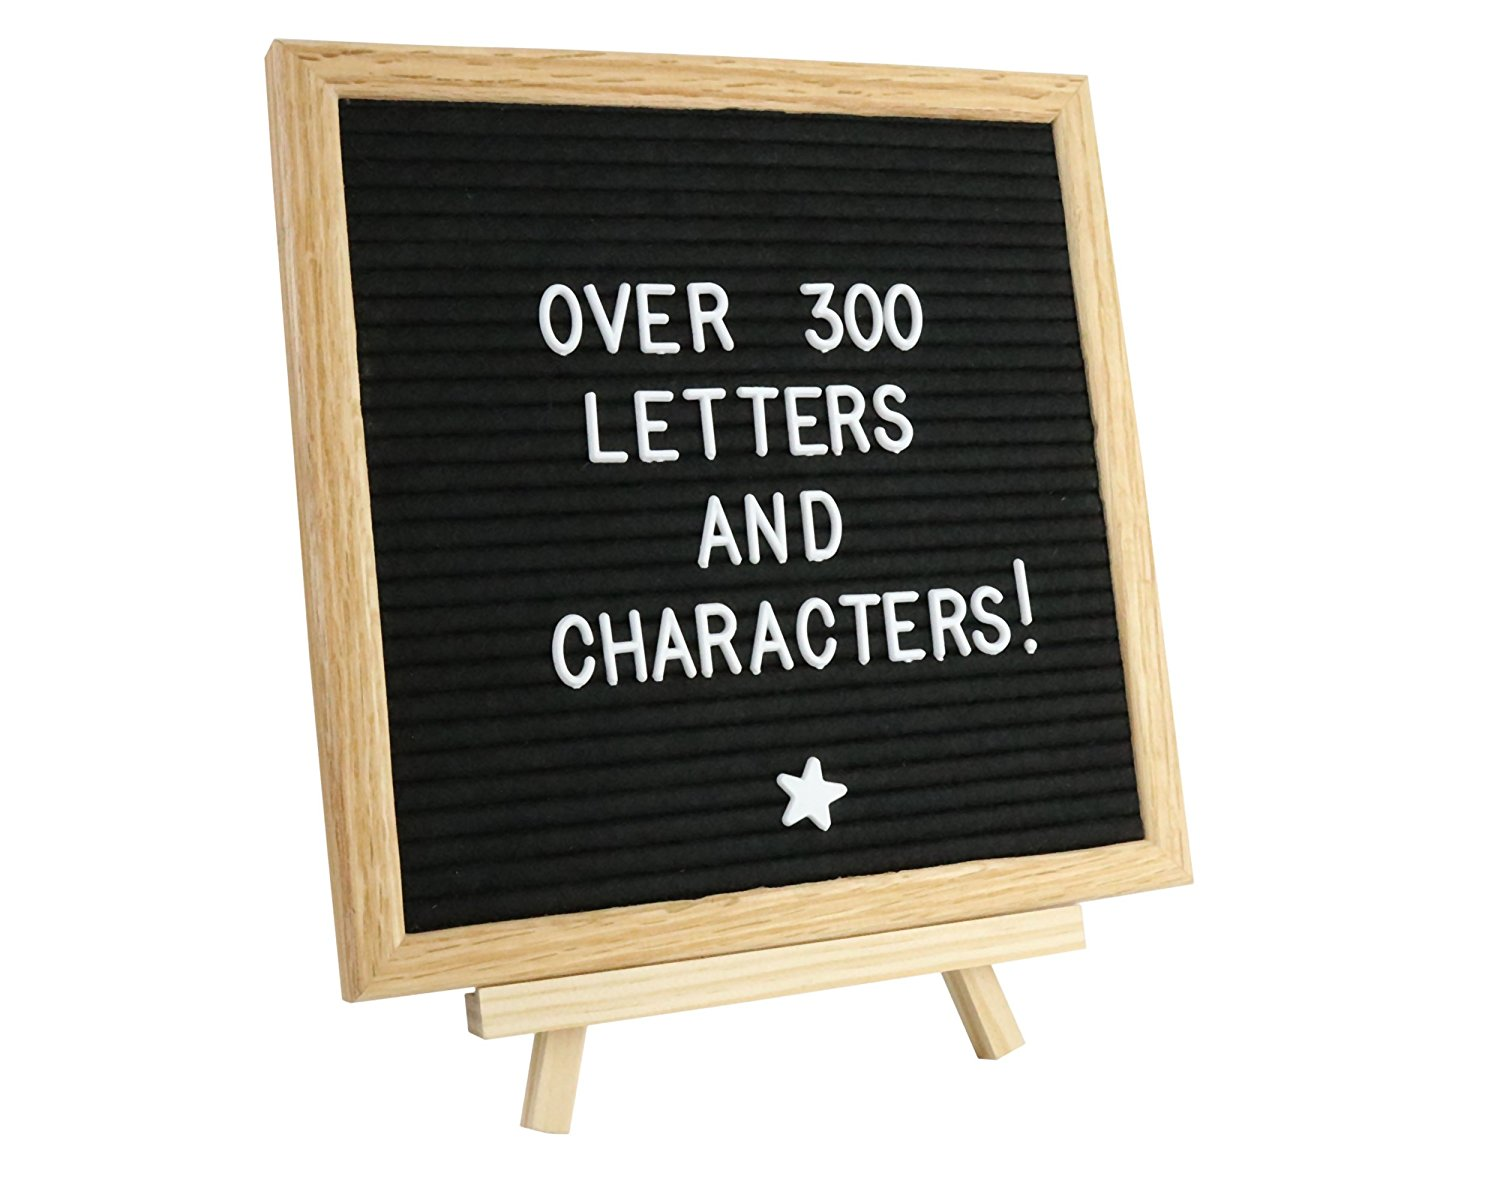 Black Felt Letter Board 10 x 10 Inches with BONUS Bag, Letters, Stand. Natural American Red Oak Wood, Durable Polyester Black Felt, 290 Piece Letters + 45 Piece Emojis. For Photos, School, Business